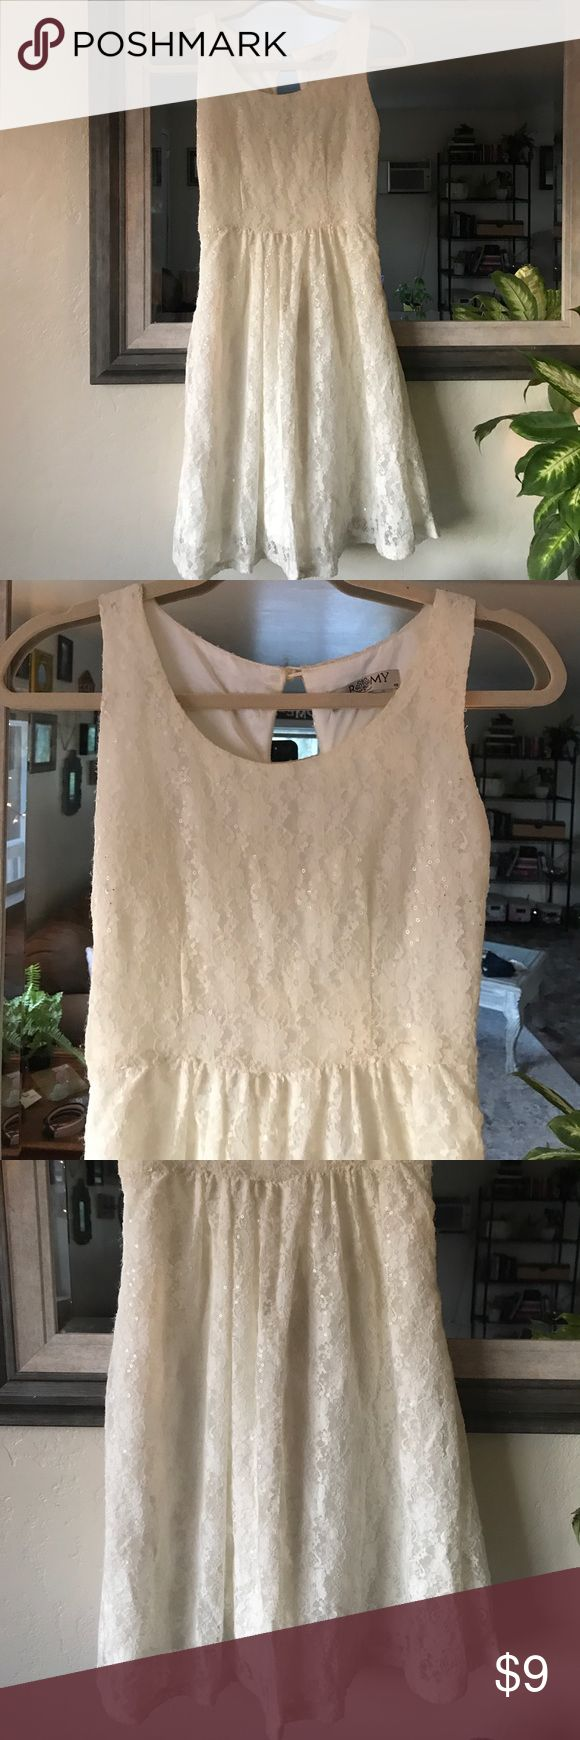 Cream Lace Dress Cream Lace Dress with sequins and side zipper. Slight wear on dress. Romy Dresses Midi